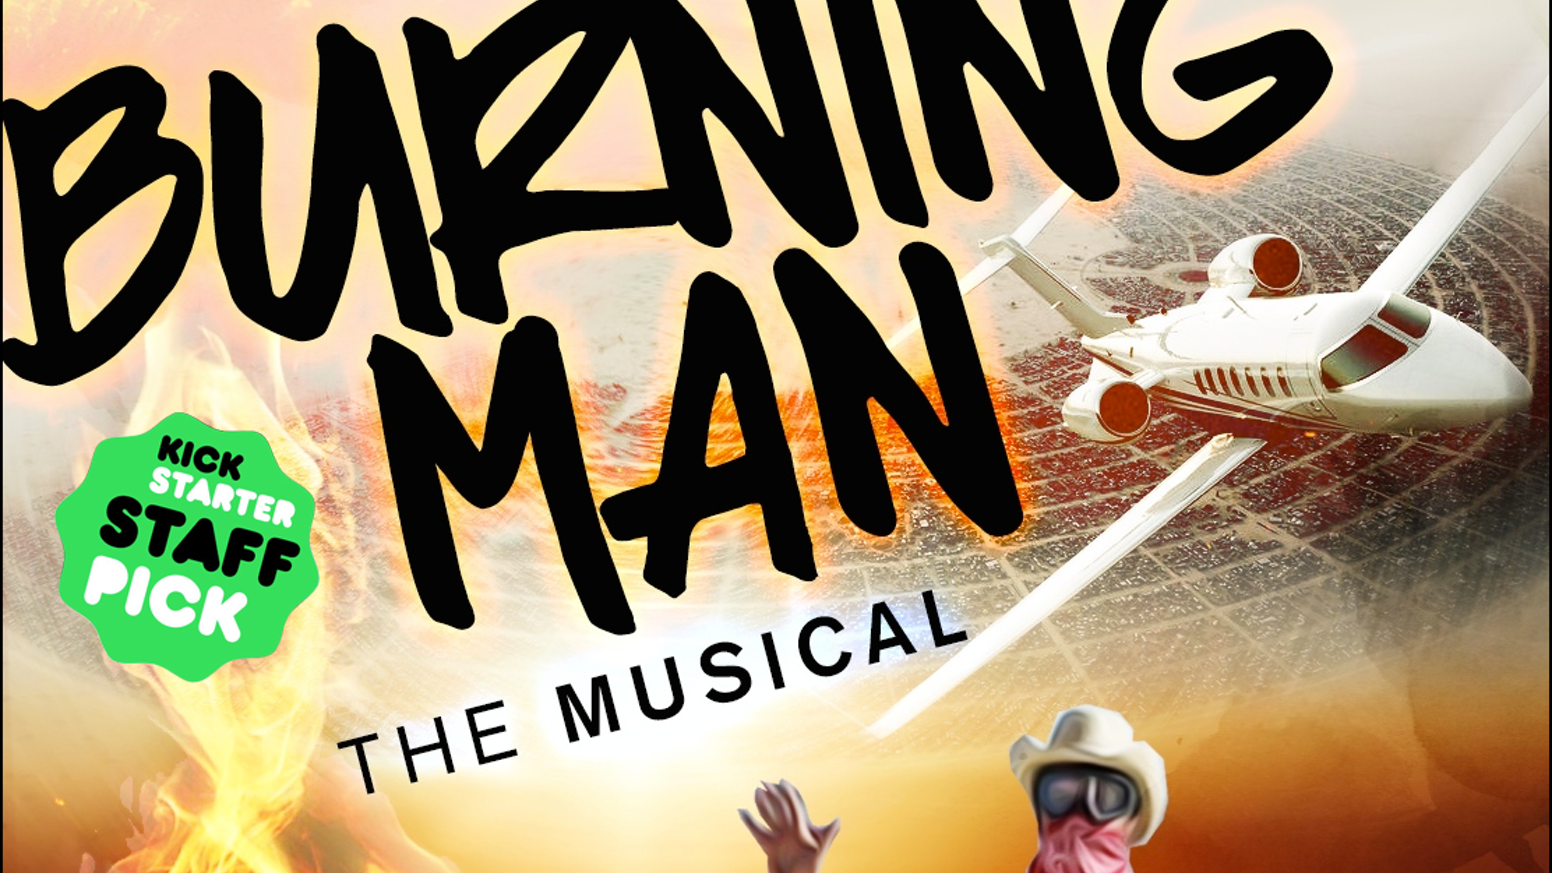 We're creating & filming the opening song to Burning Man: The Musical.